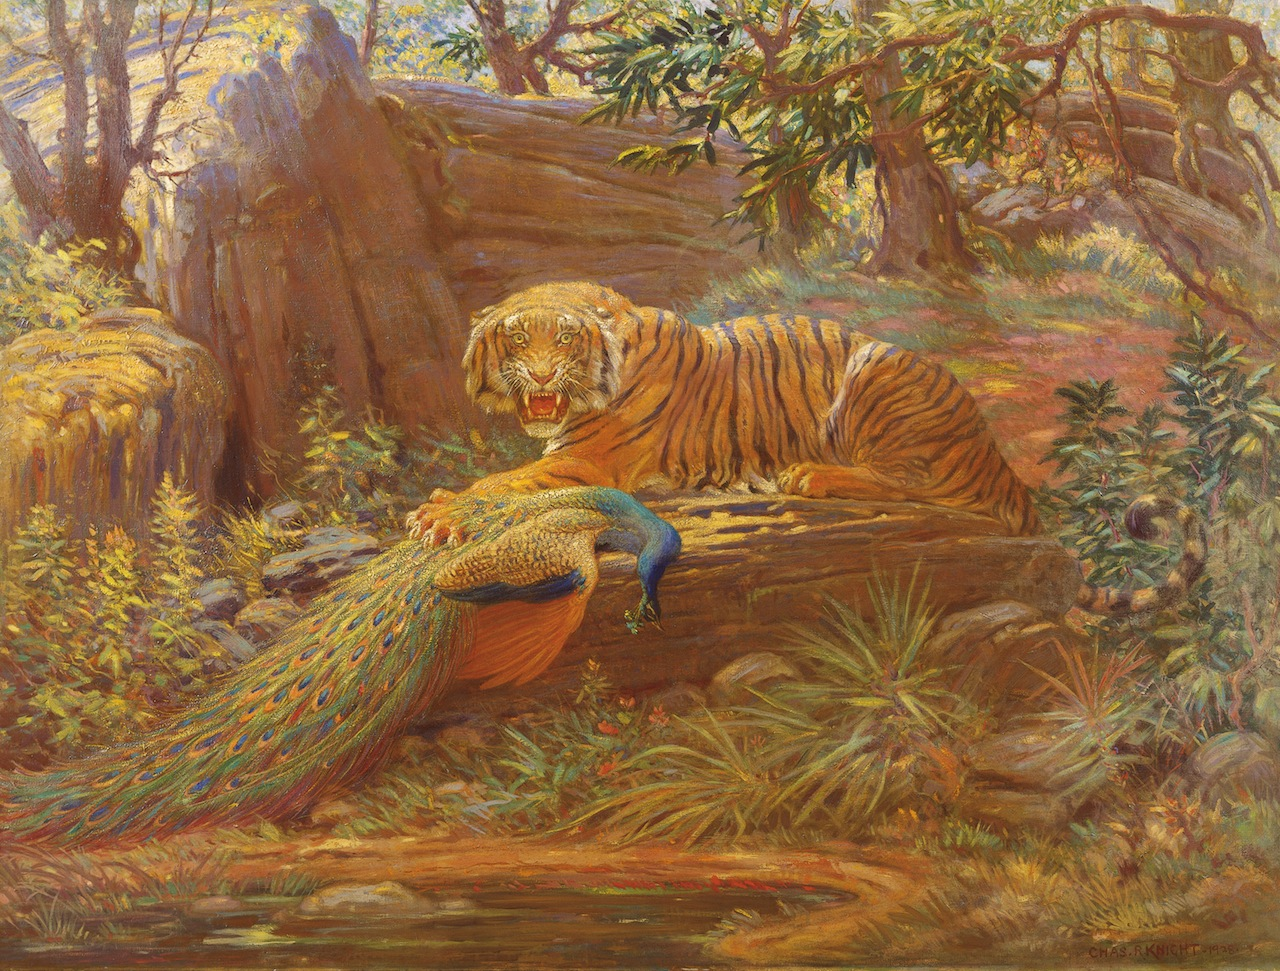 """""""Bengal Tiger and Peacock,"""" (1928) by Charles R. Knight (Courtesy of Rhoda Knight Kalt)"""